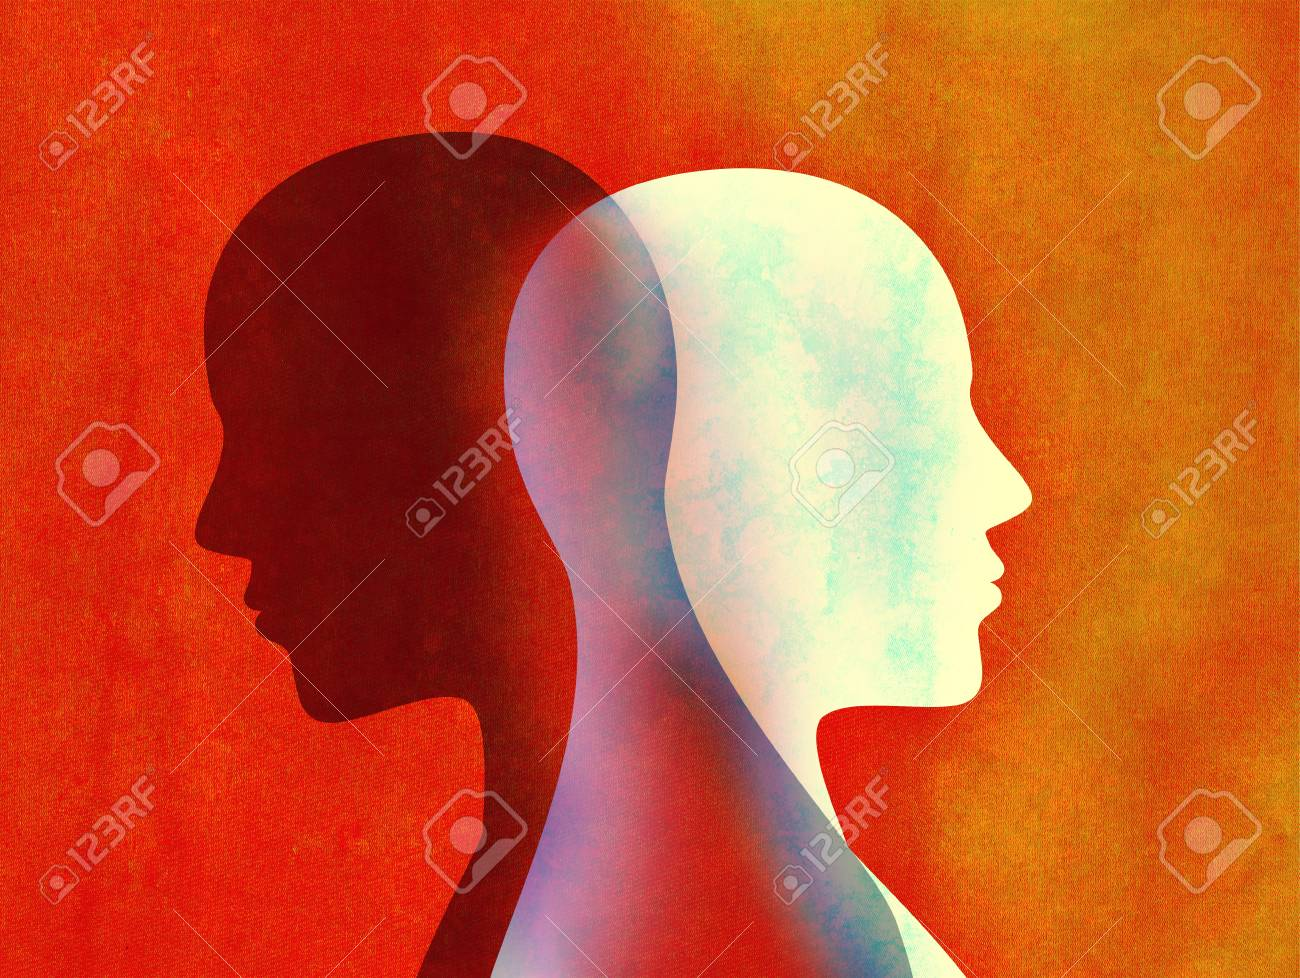 Bipolar disorder mind mental concept. Change of mood. Emotions. Split personality. Dual personality. Head silhouette of man - 117694816